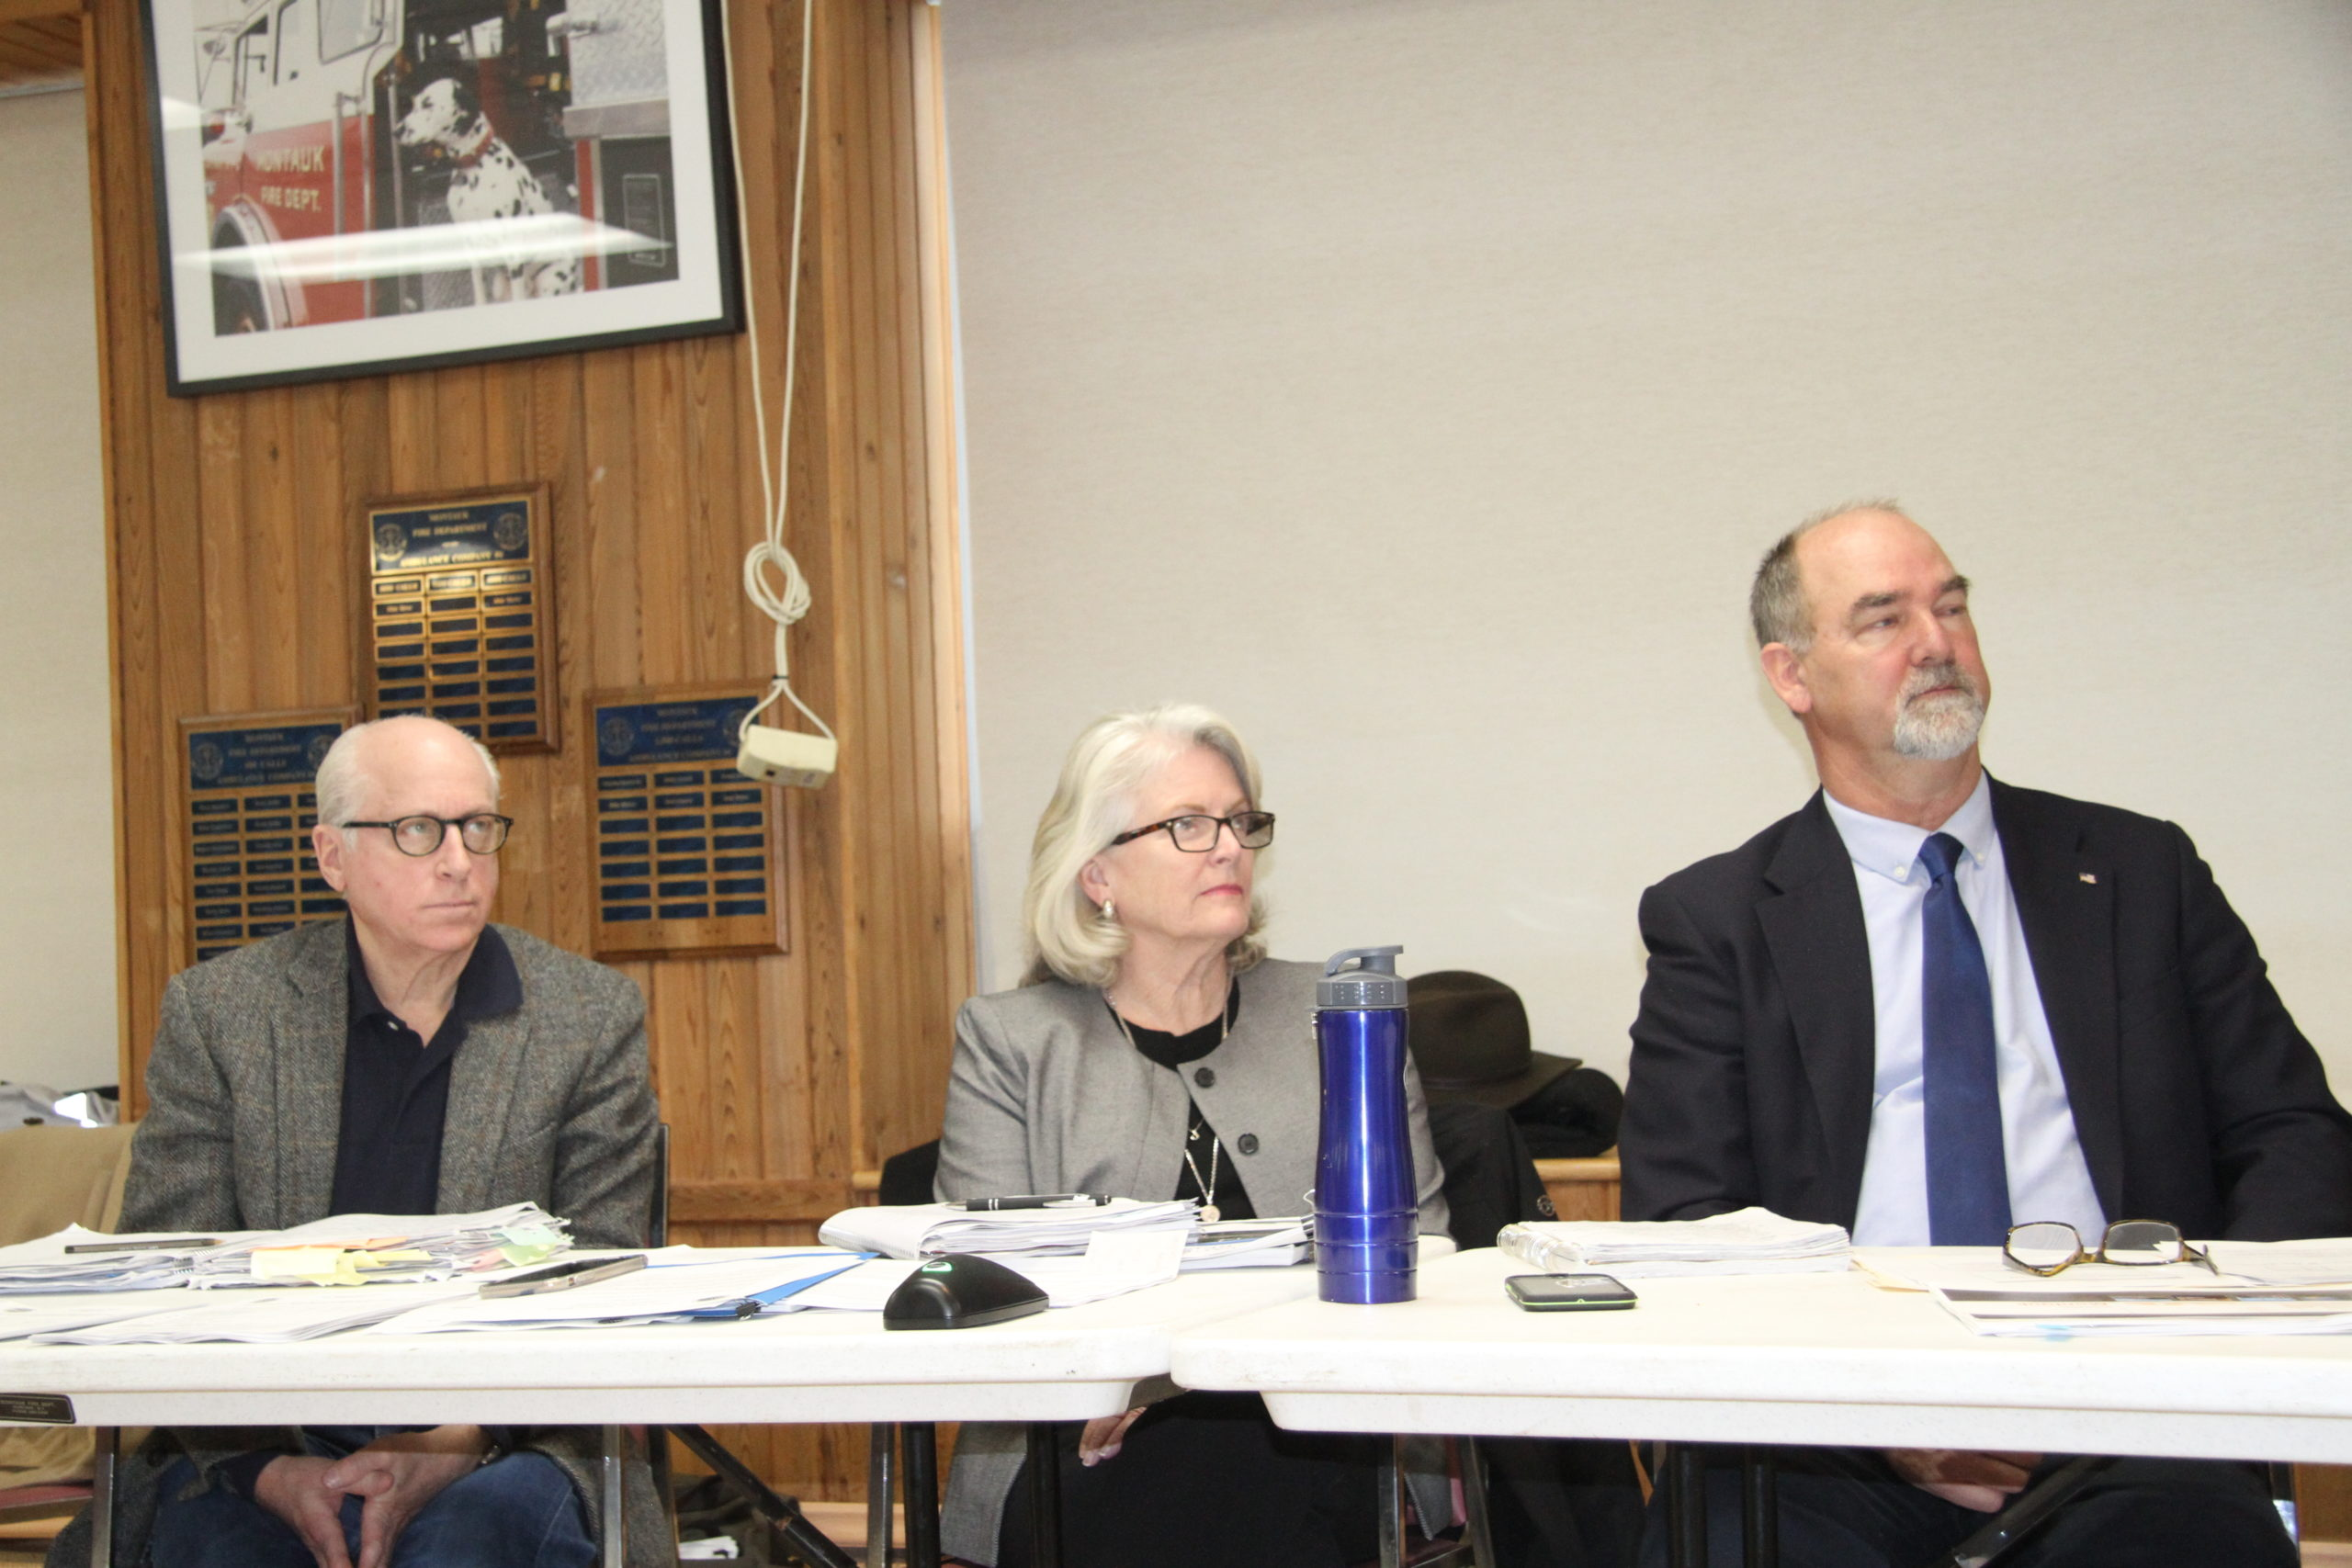 East Hampton Town Board members agreed that the guidance about retreat from the oceanfront should be softened in the Montauk hamlet study.